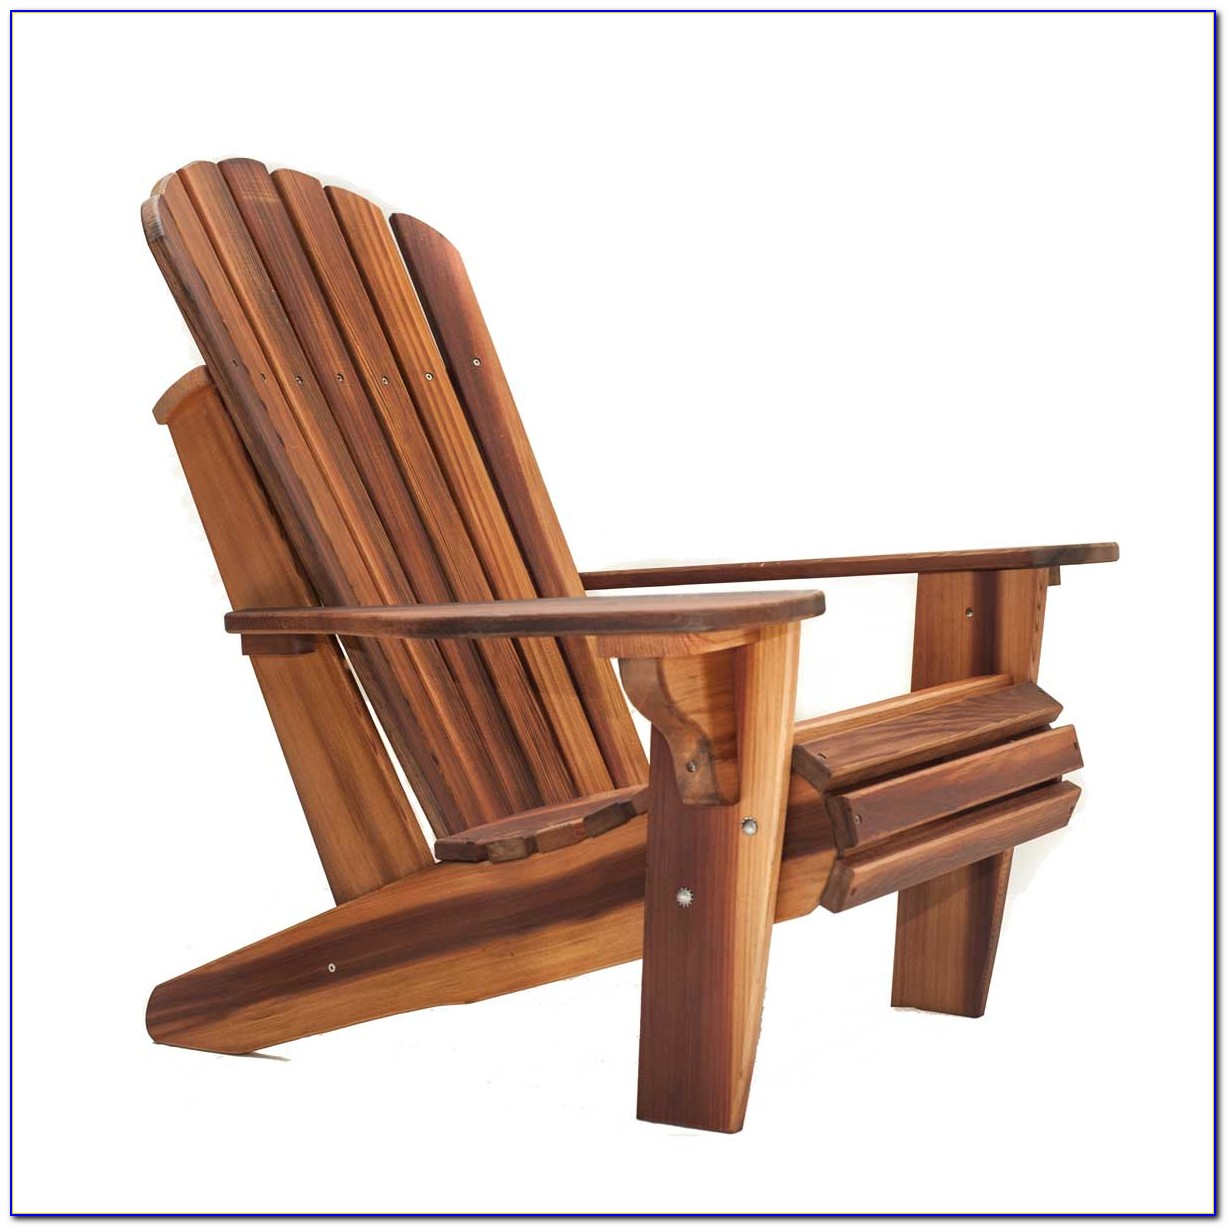 Adirondack Chair Kits Polywood